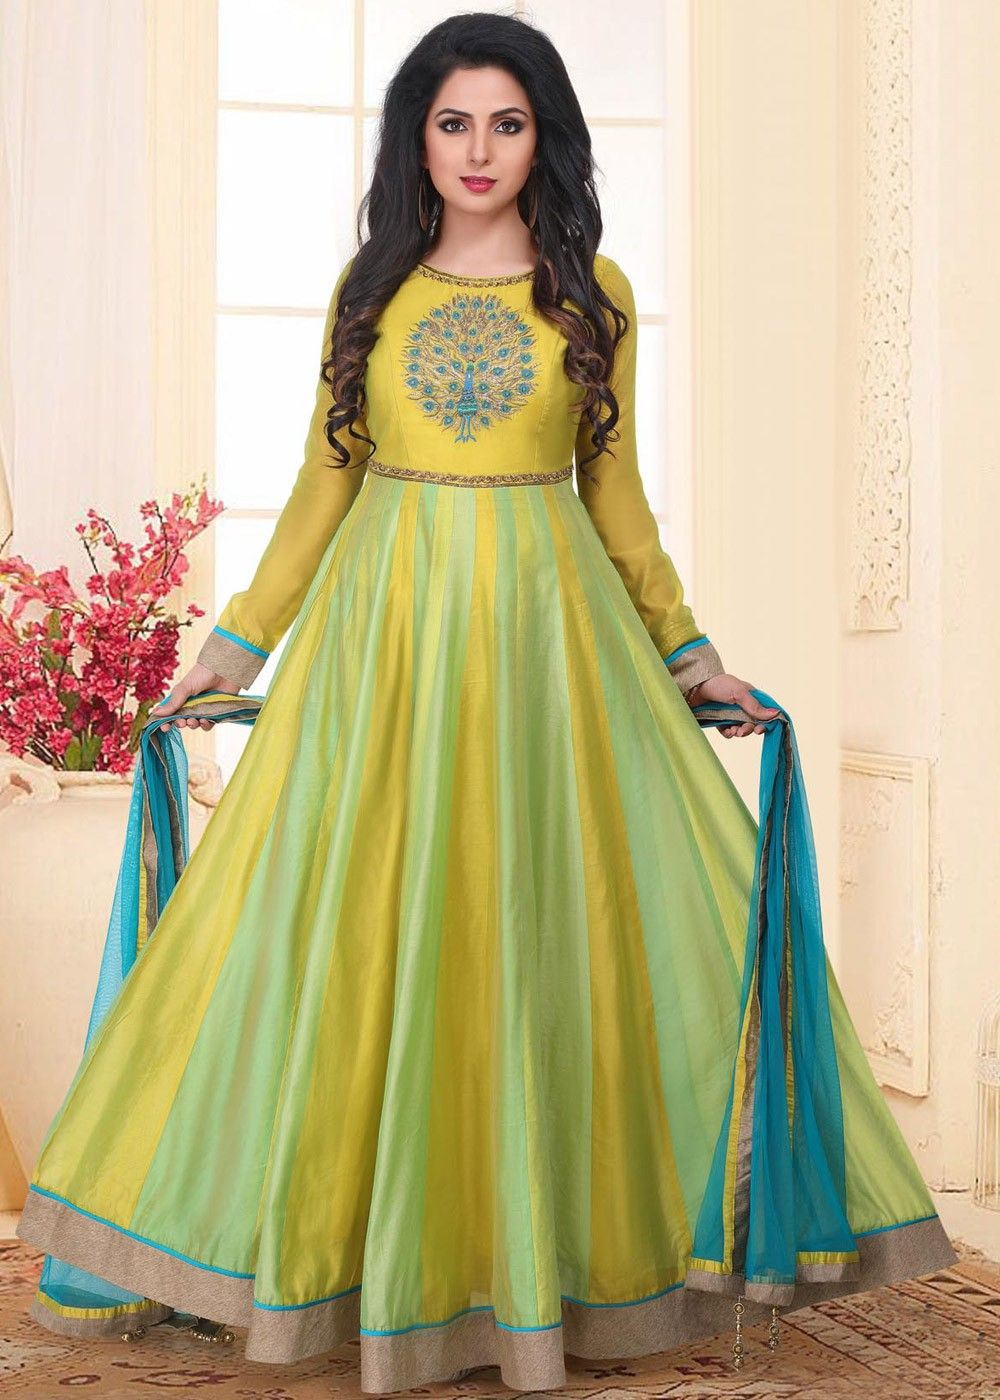 b641eb854ab8 #salwarkameez #silksalwar #Yellowsalwar #Embroideredsalwar #womenfashion # dresses #ladiesfashion #fashiontips